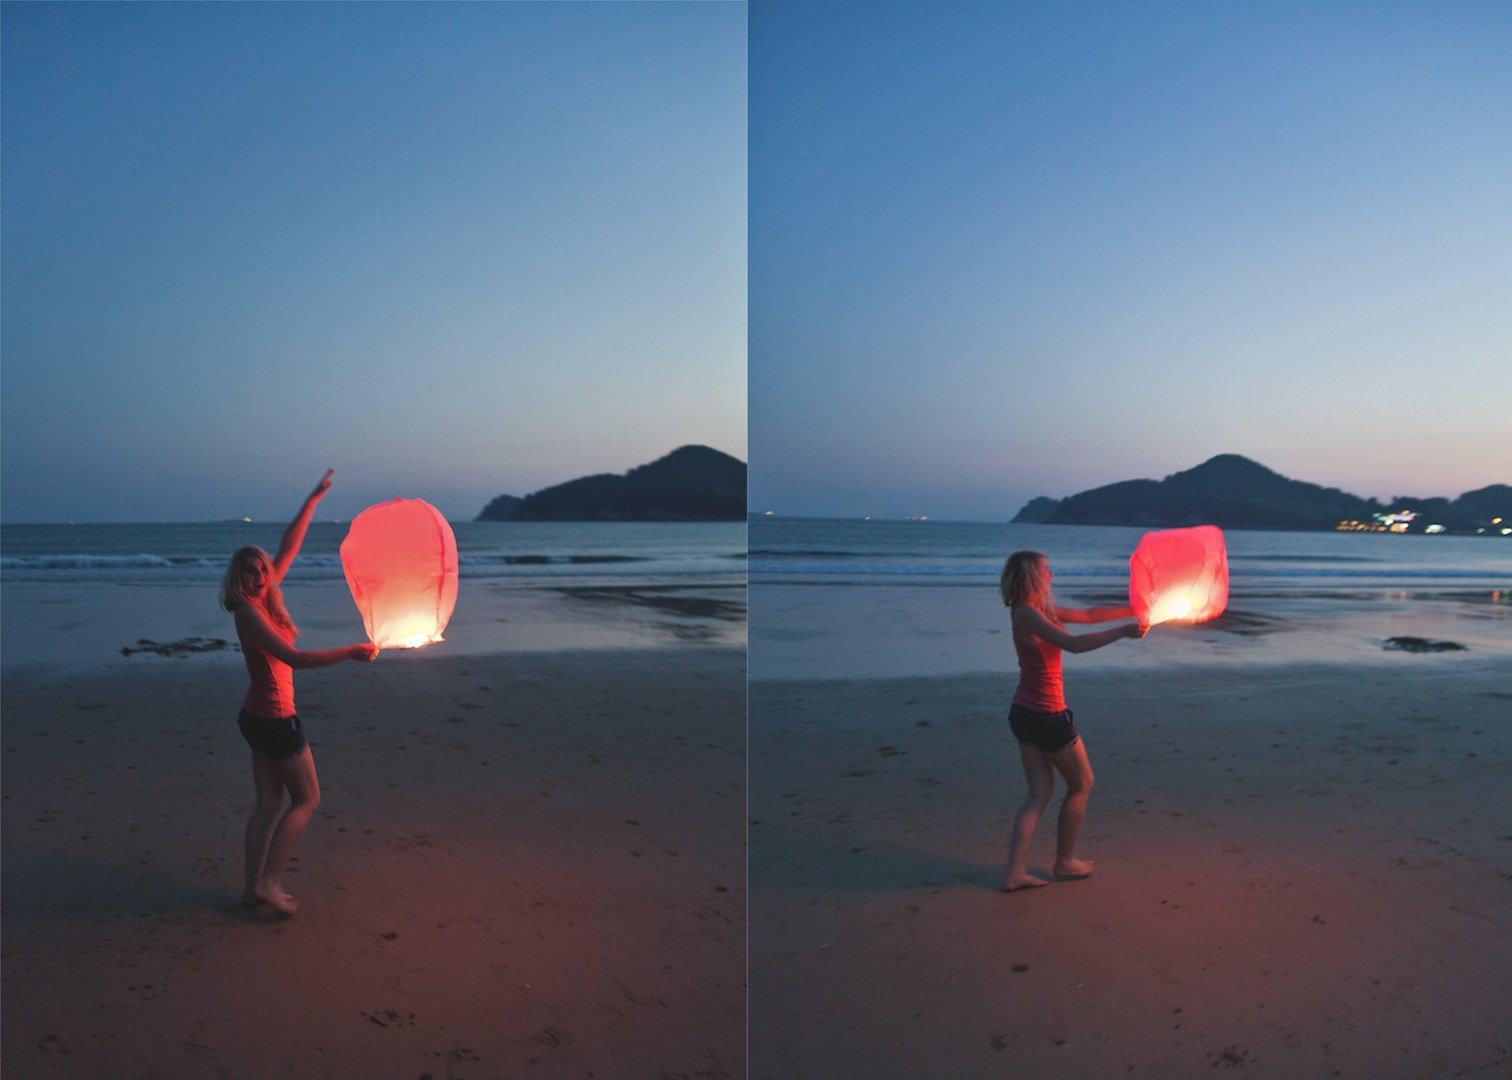 Chinese Sky Lanterns, Namhae, South Korea